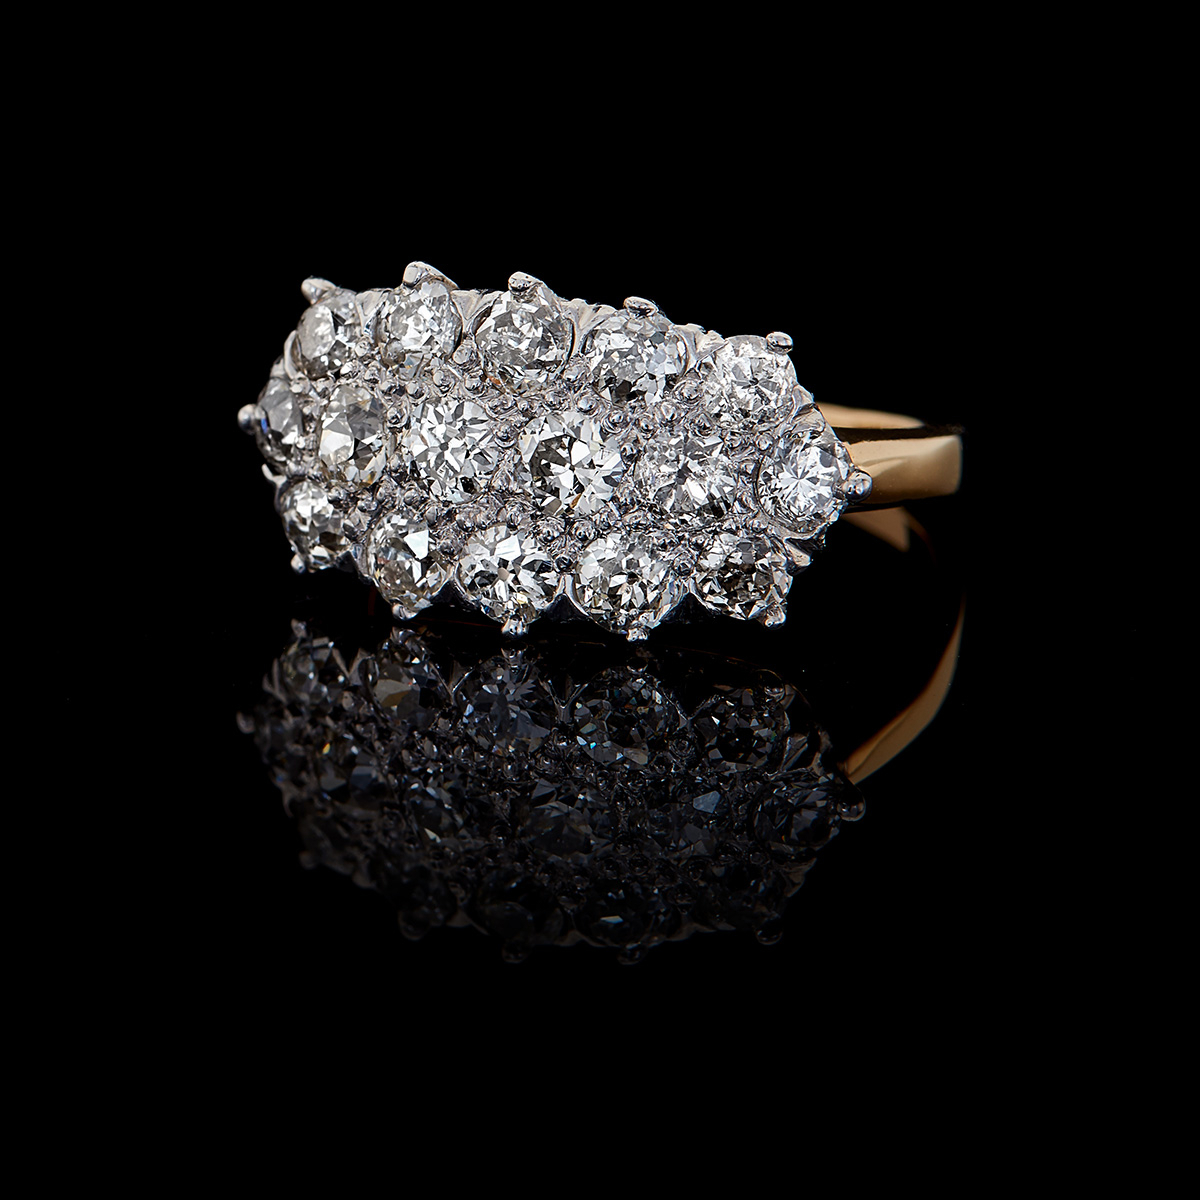 Vintage, Antique & Estate Rings | Calhoun Jewelers Intended For Best And Newest Diamond Vintage Style Three Row Anniversary Bands In White Gold (Gallery 13 of 25)